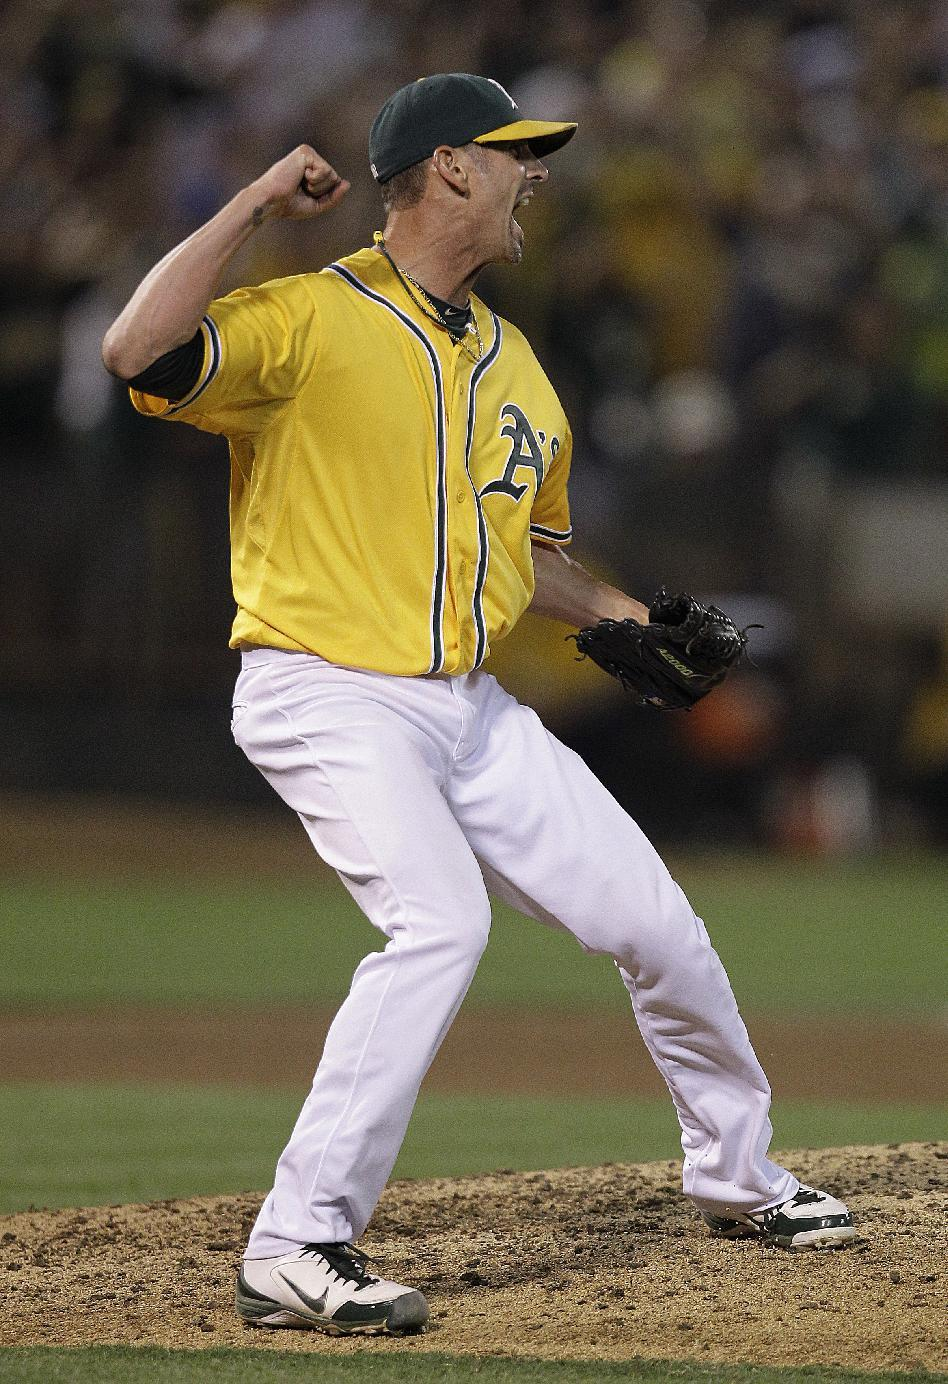 Oakland Athletics' Grant Balfour reacts as the final out is made against the Texas Rangers at the end of a baseball game Tuesday, Oct. 2, 2012, in Oakland, Calif. The A's won 3-1.(AP Photo/Ben Margot)